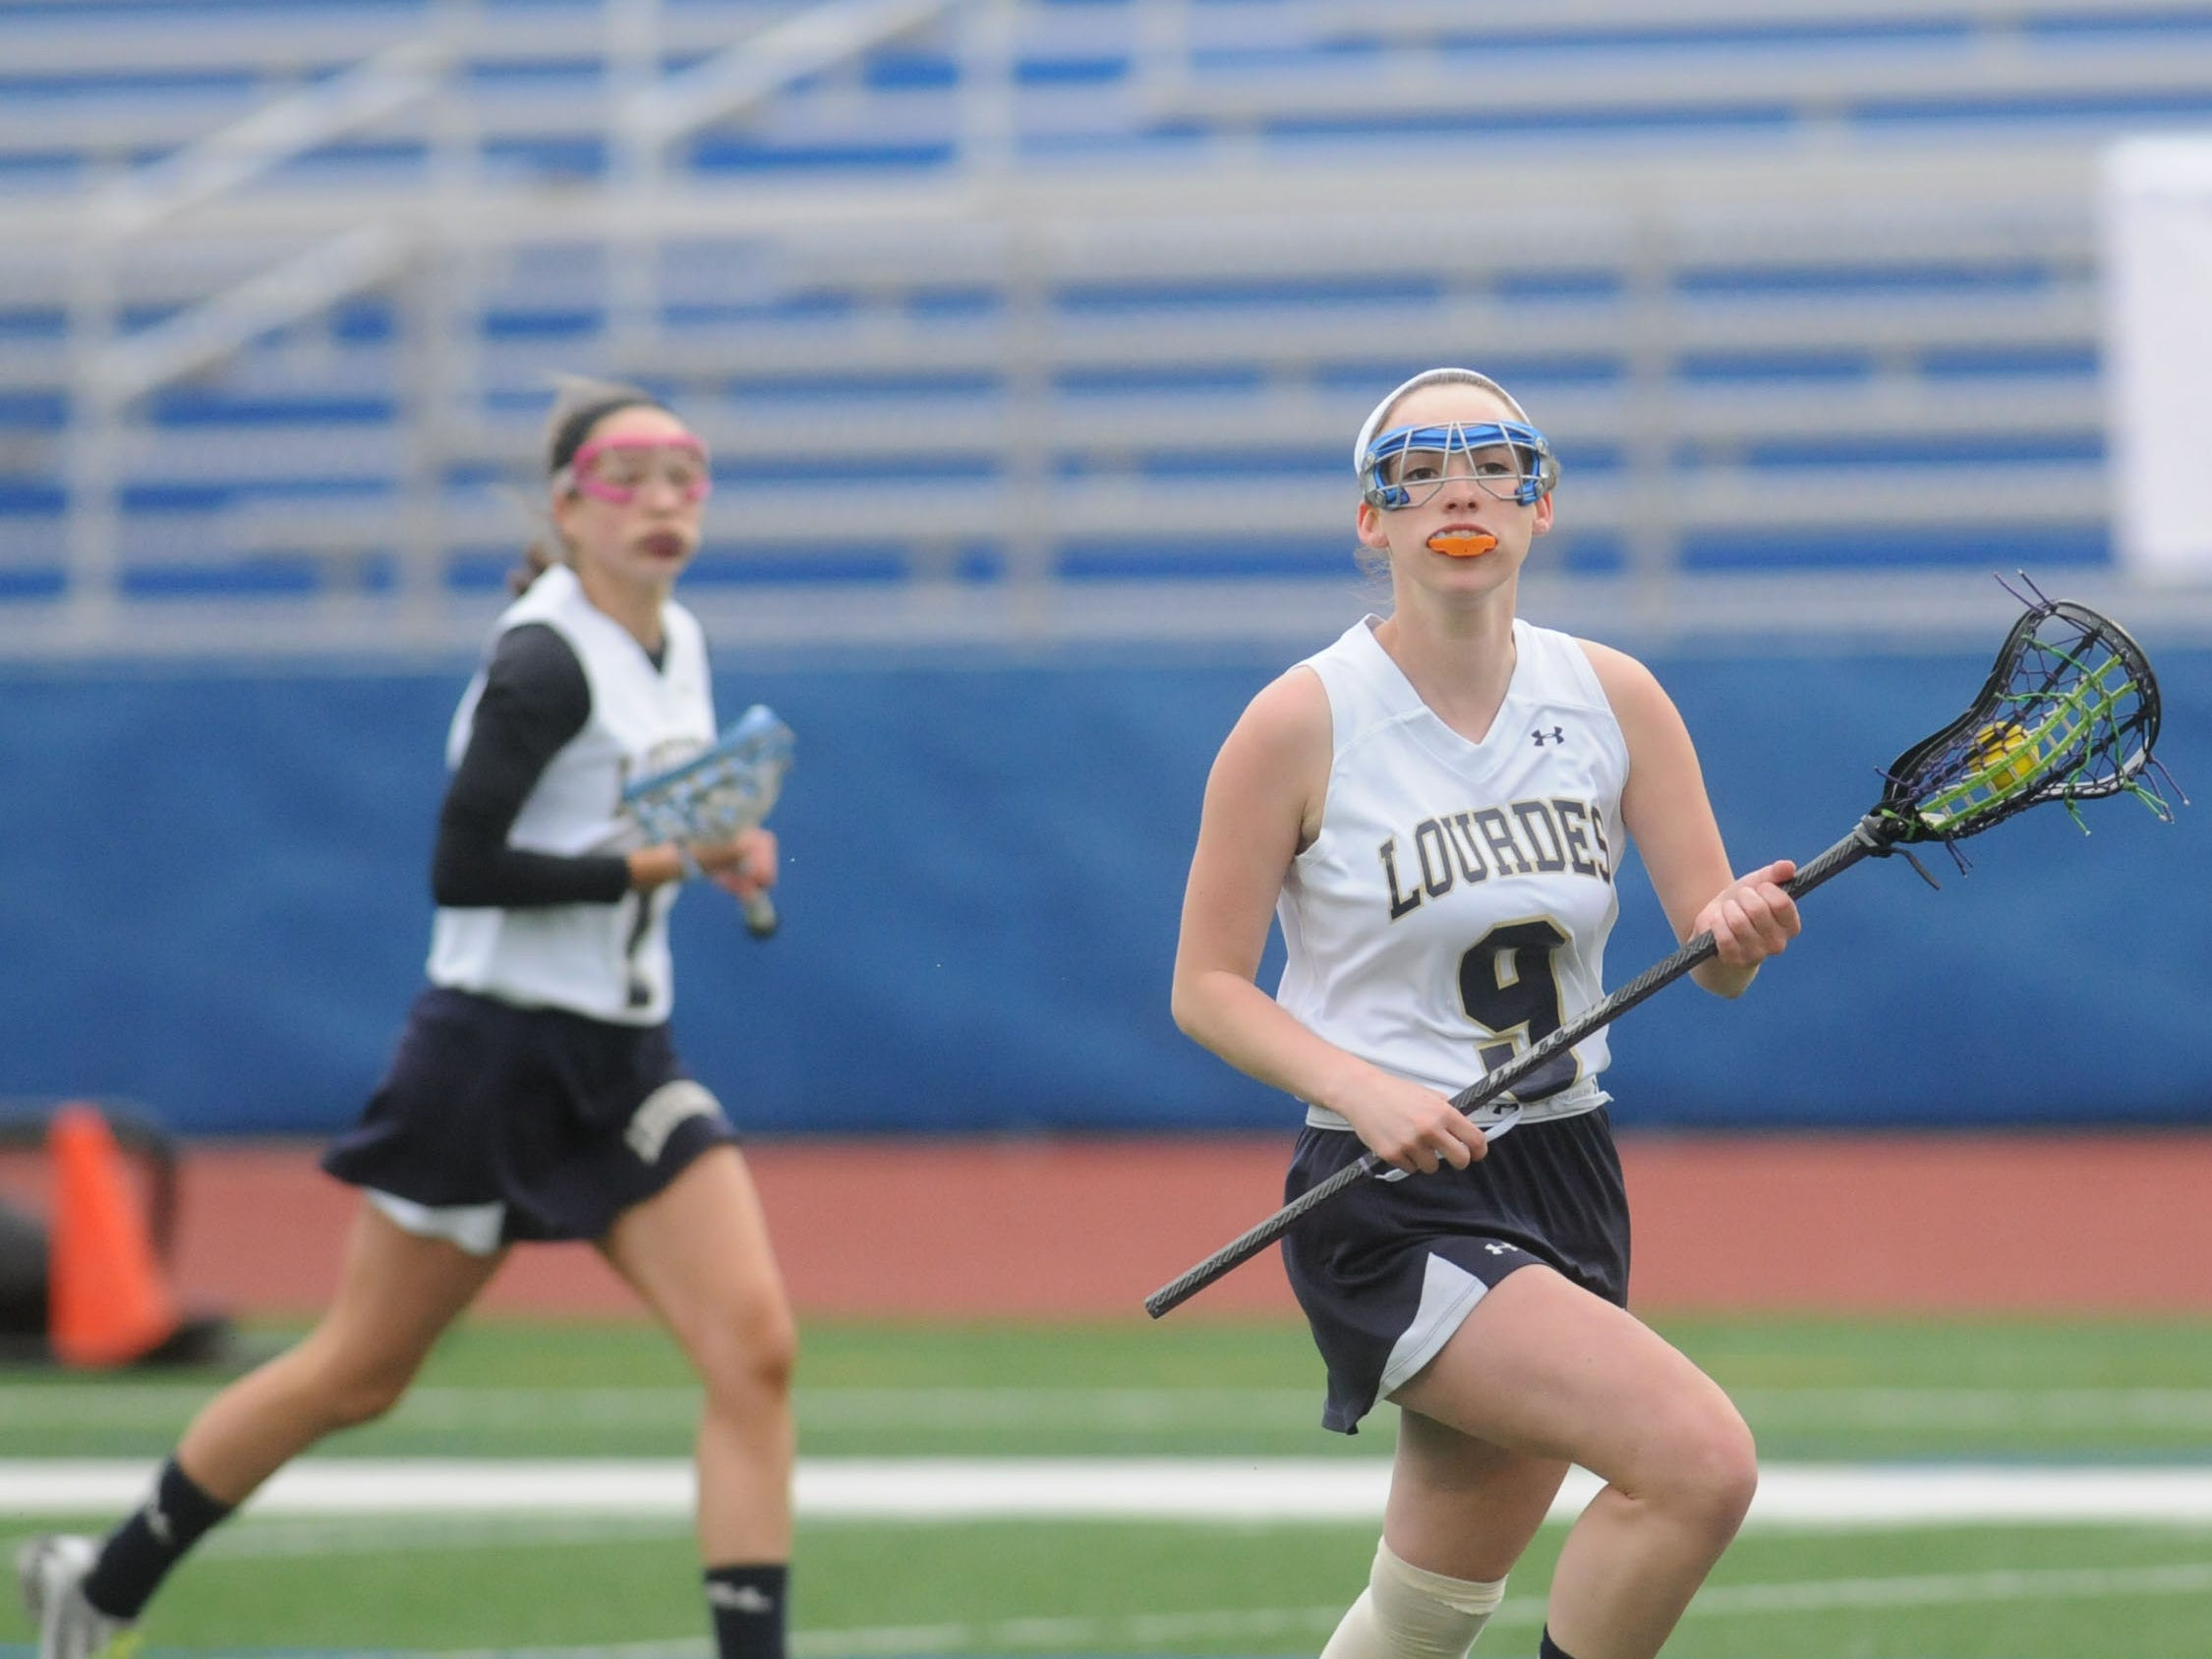 Lourdes' Sophia Stanford takes the ball down field in Monday's game against Valley Central.